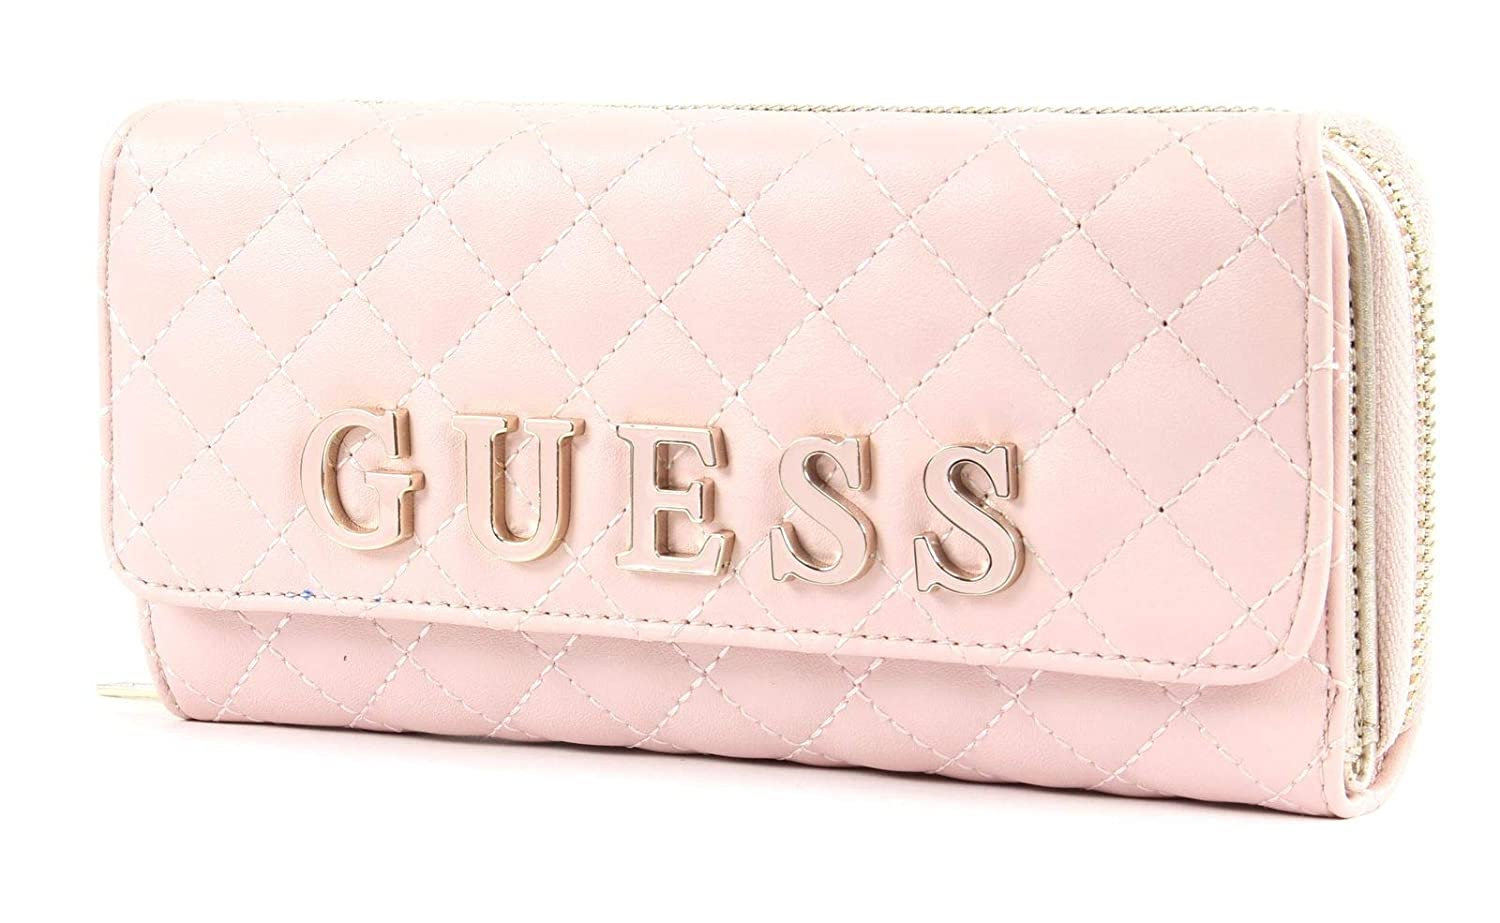 Guess Passion SLG Large Clutch Organizer Blush: